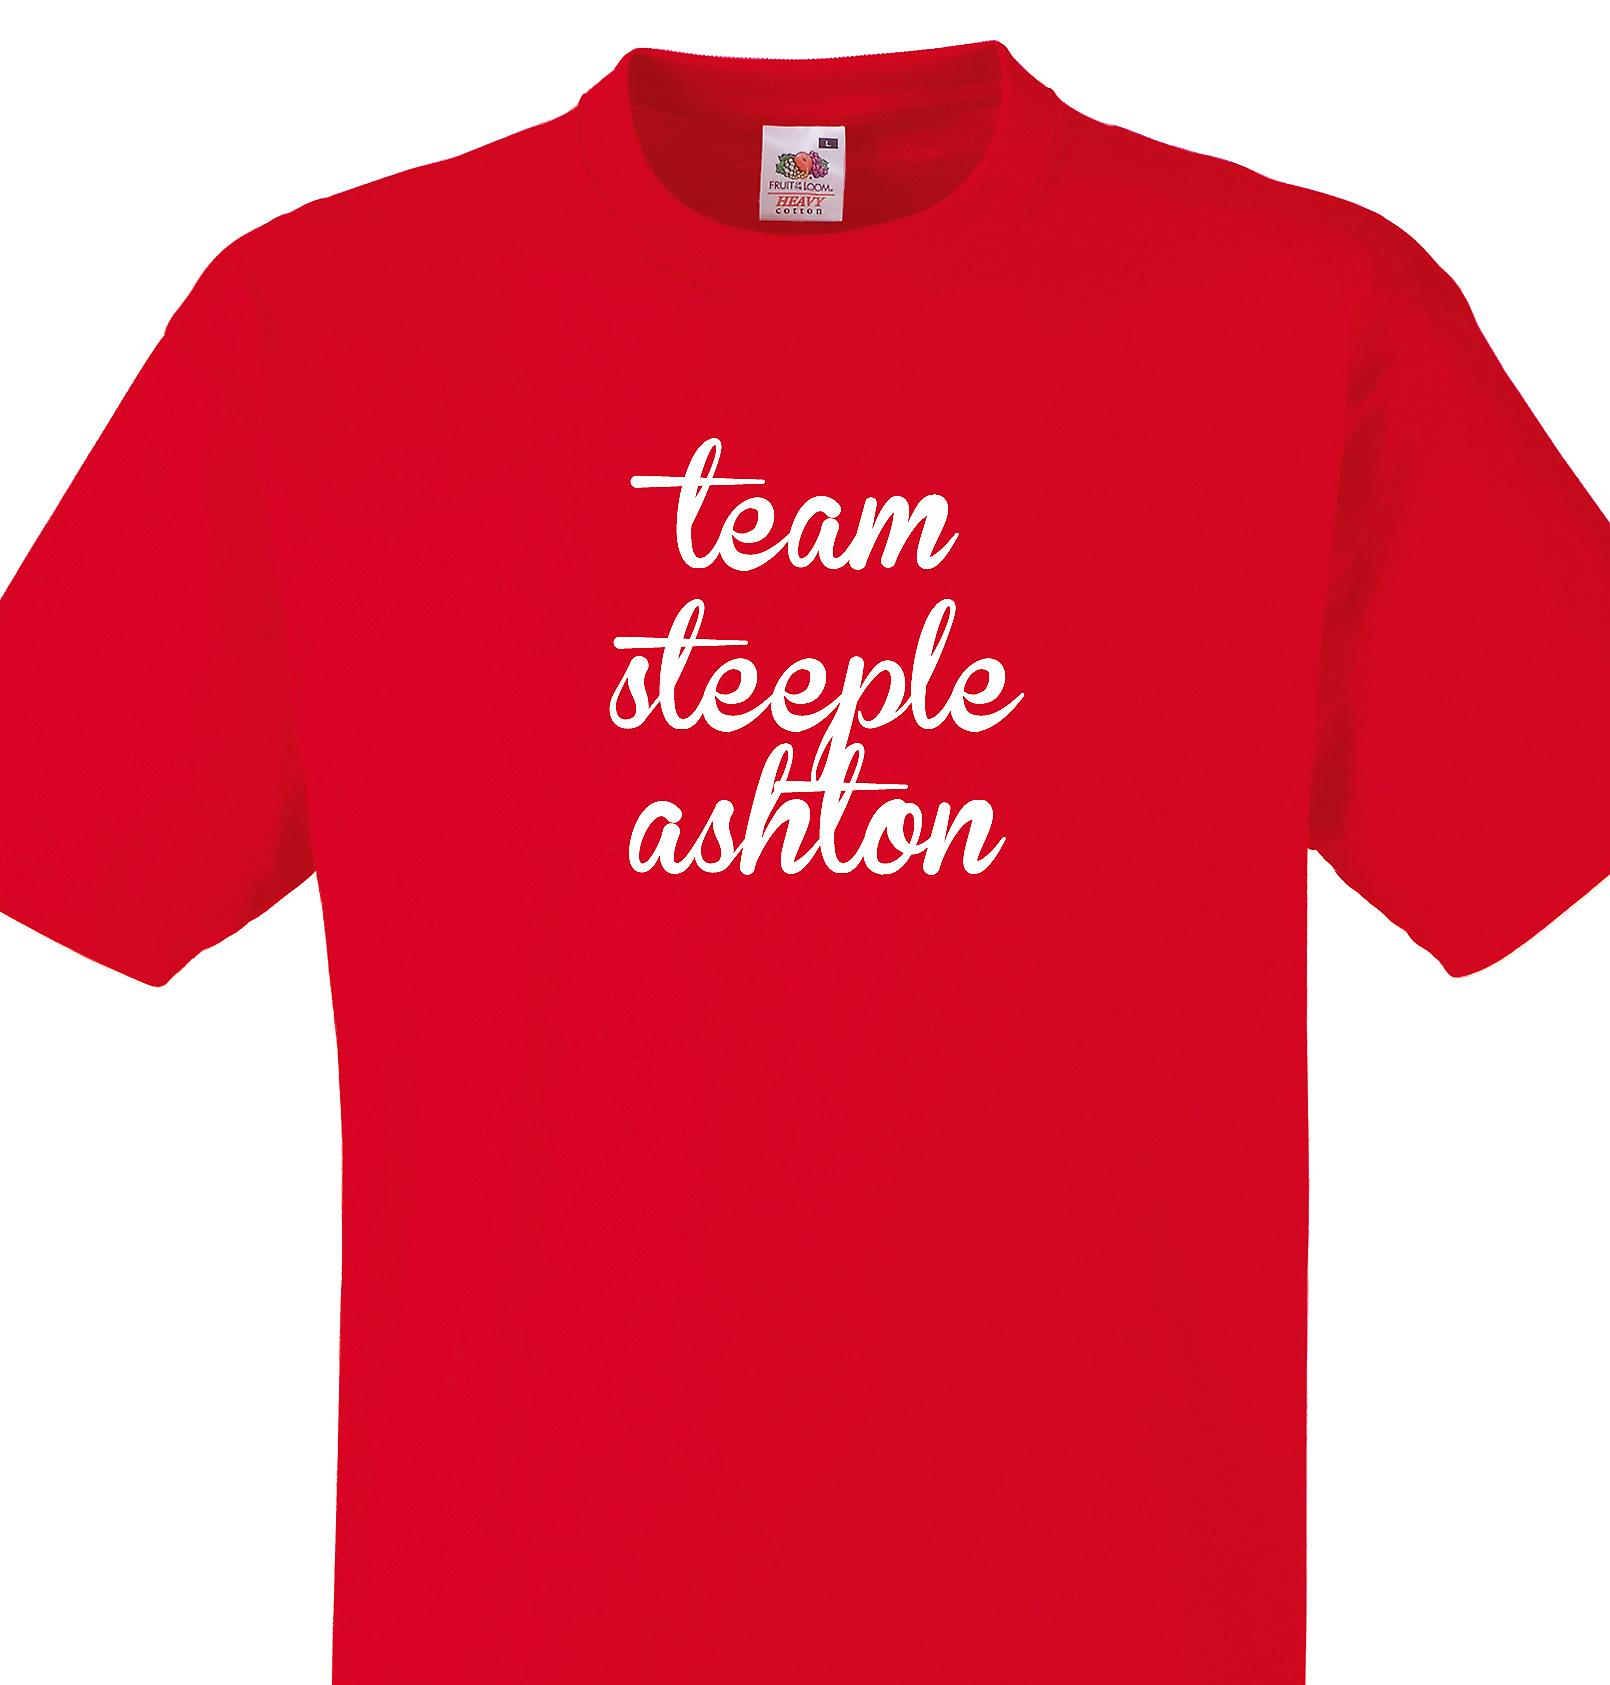 Team Steeple ashton Red T shirt